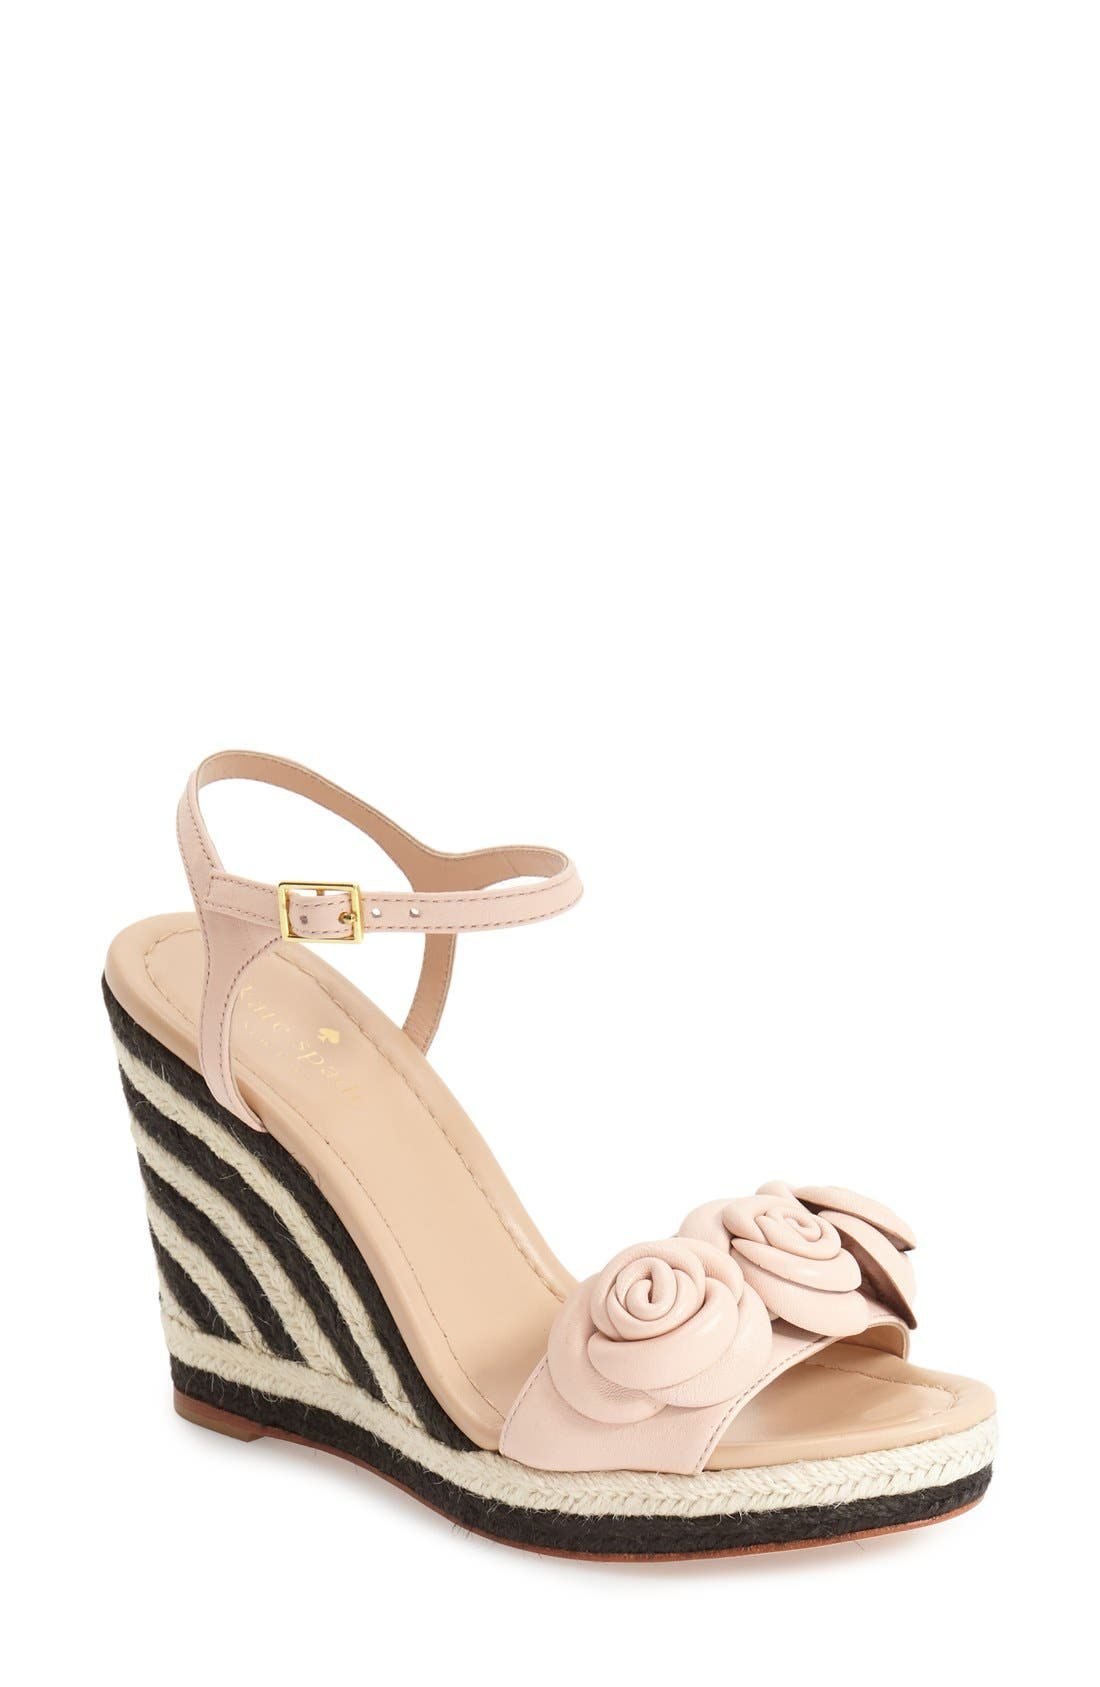 Main Image - kate spade new york 'jill' espadrille wedge sandal (Women)